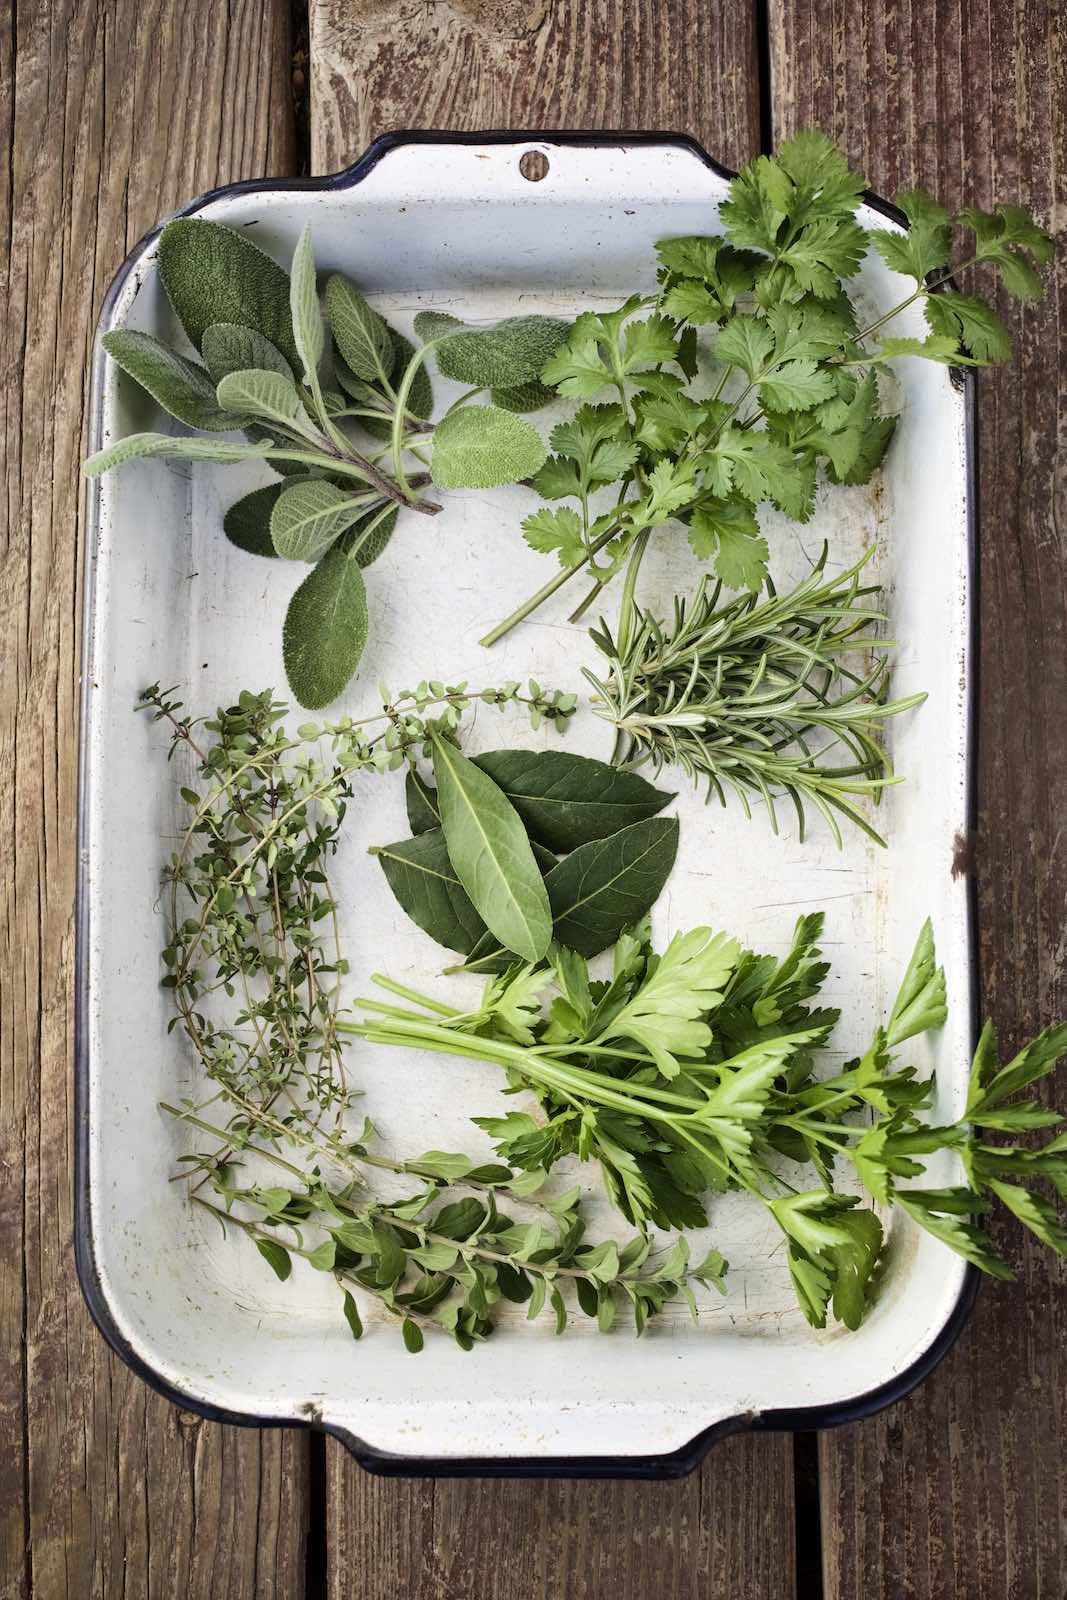 Jody Horton Photography - Assorted fresh herbs in a tin pan.